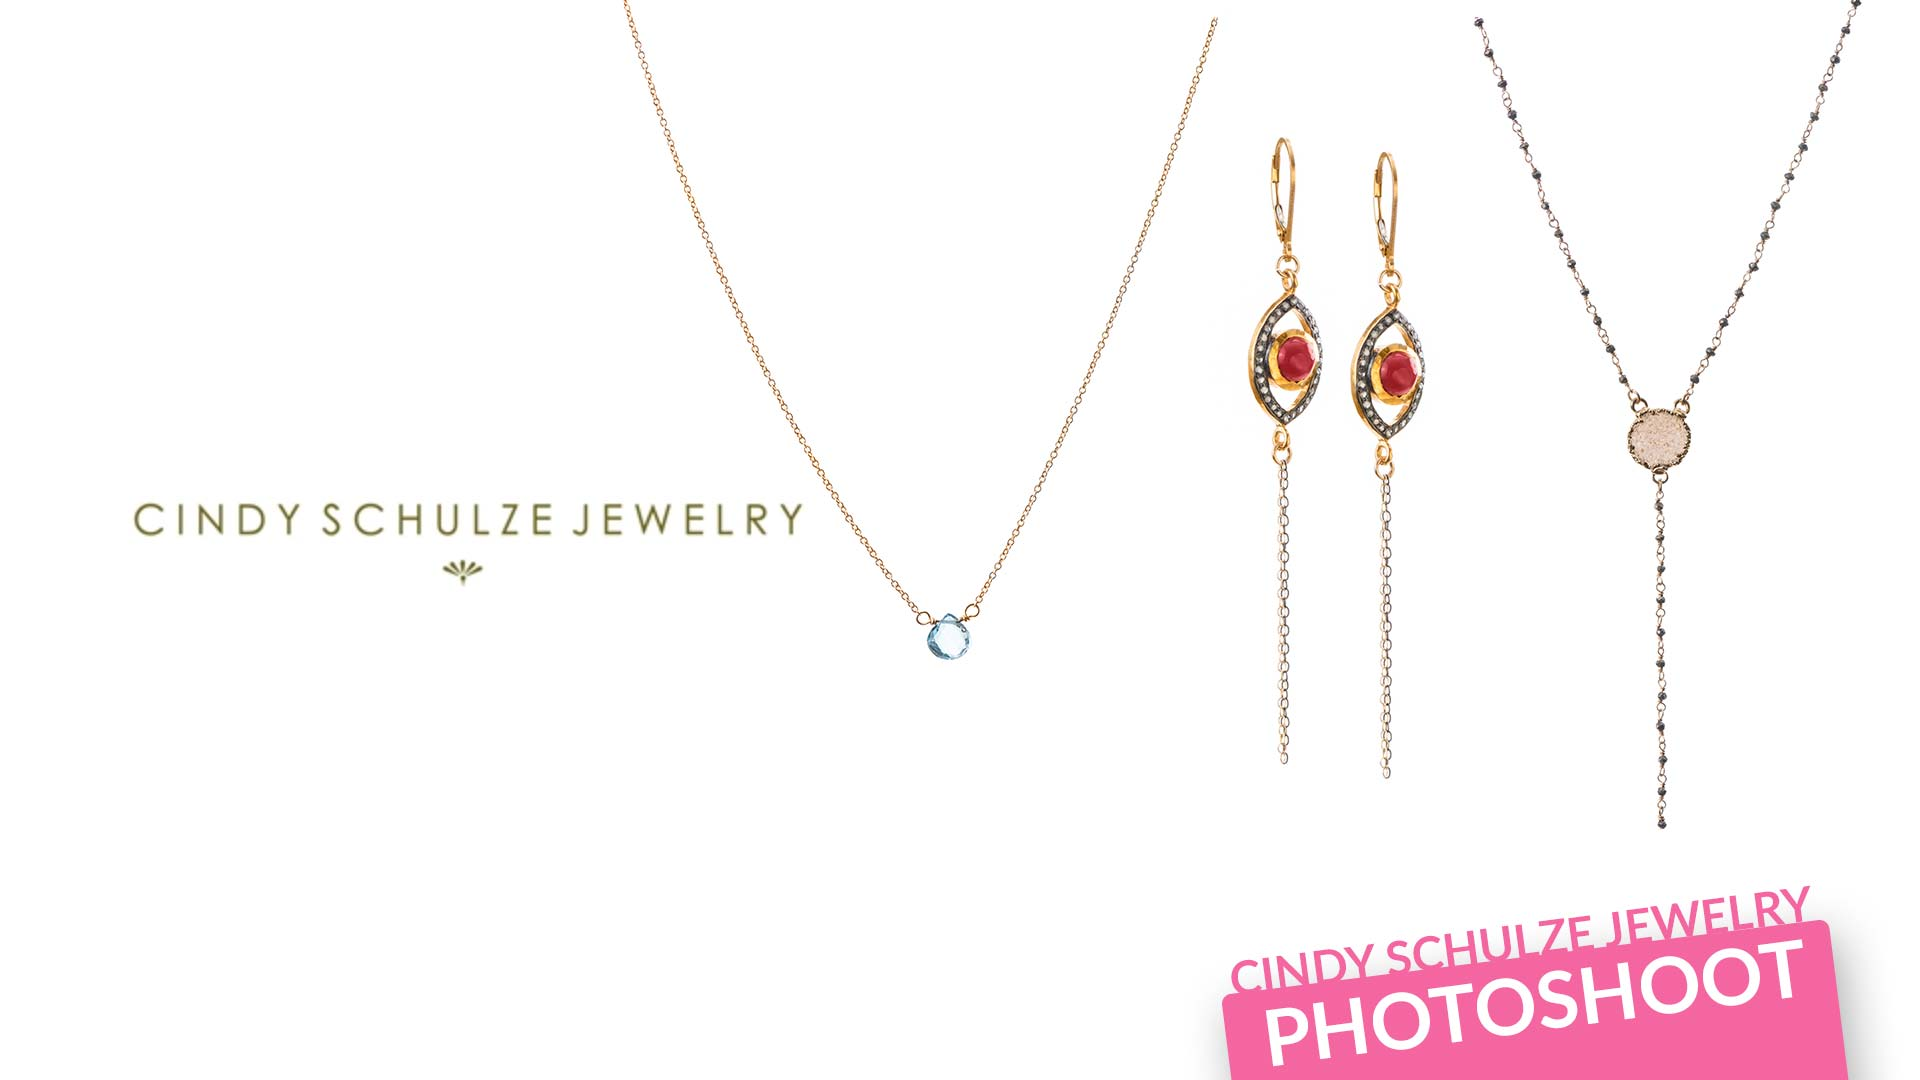 Cindy Schulze Jewelry Photo Shoot